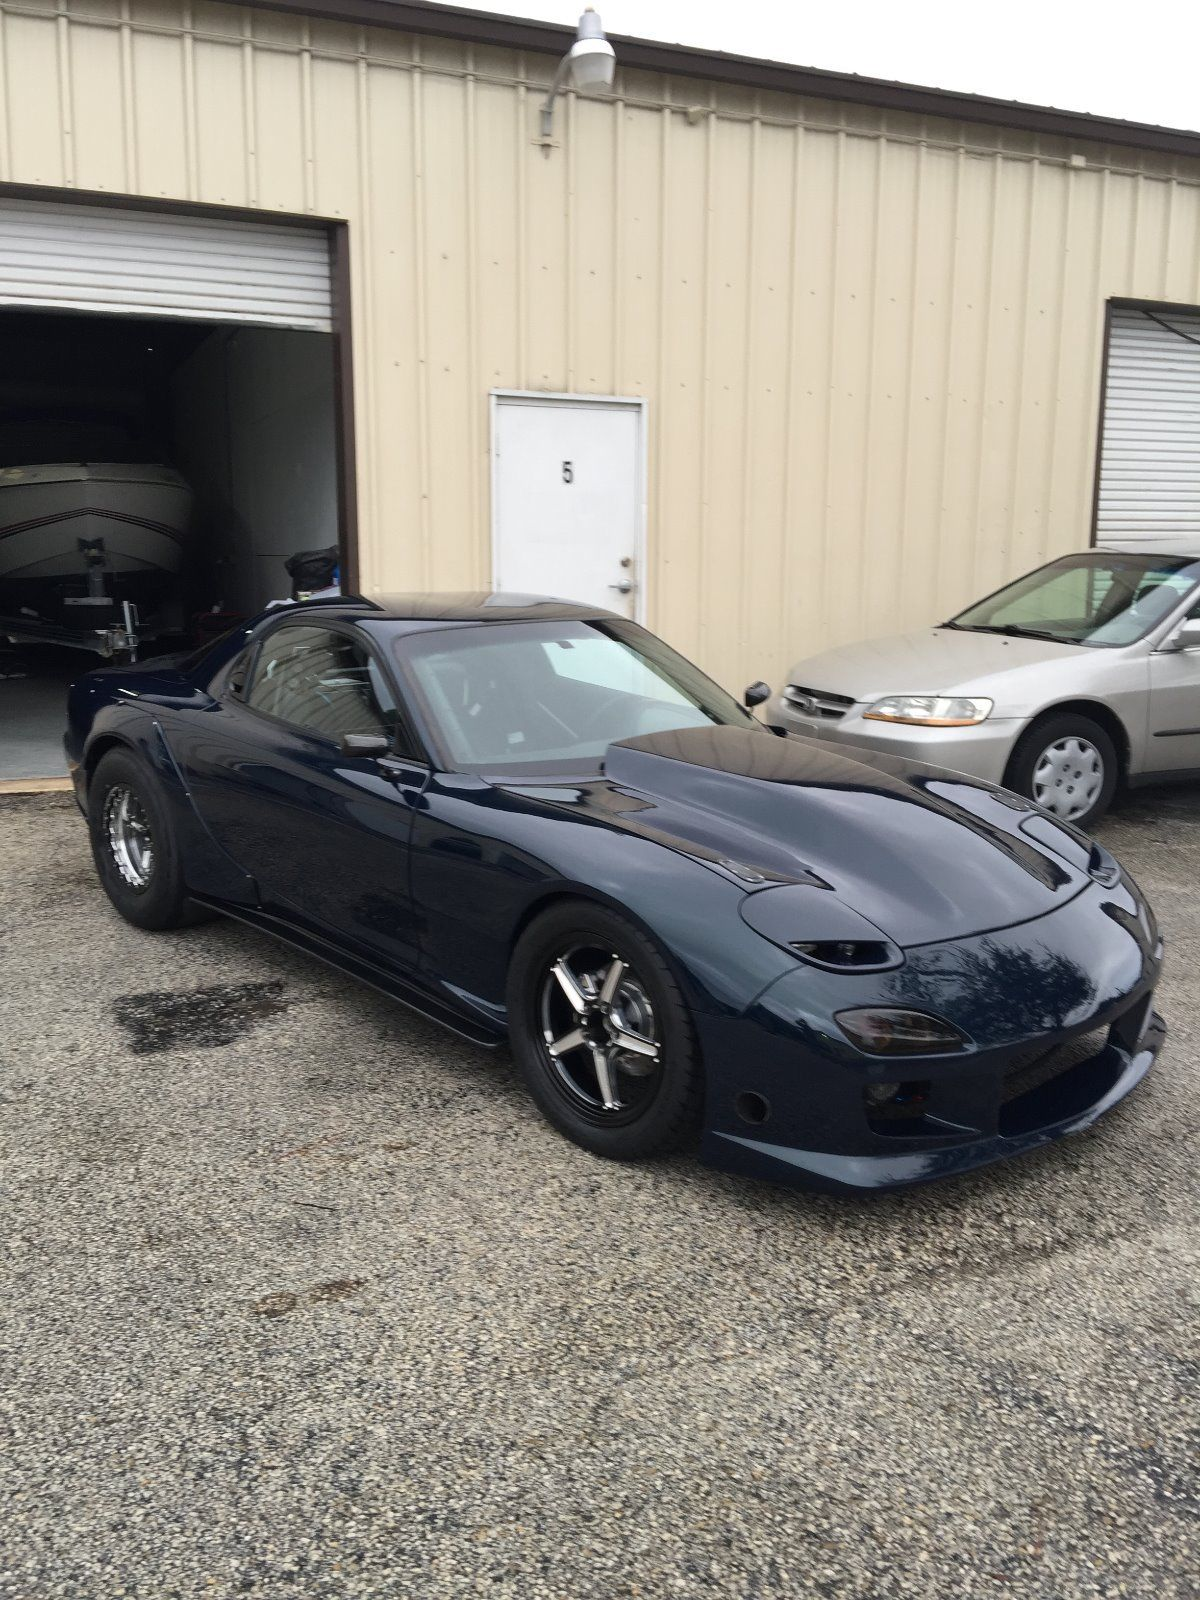 1994 mazda rx 7 for sale. Black Bedroom Furniture Sets. Home Design Ideas